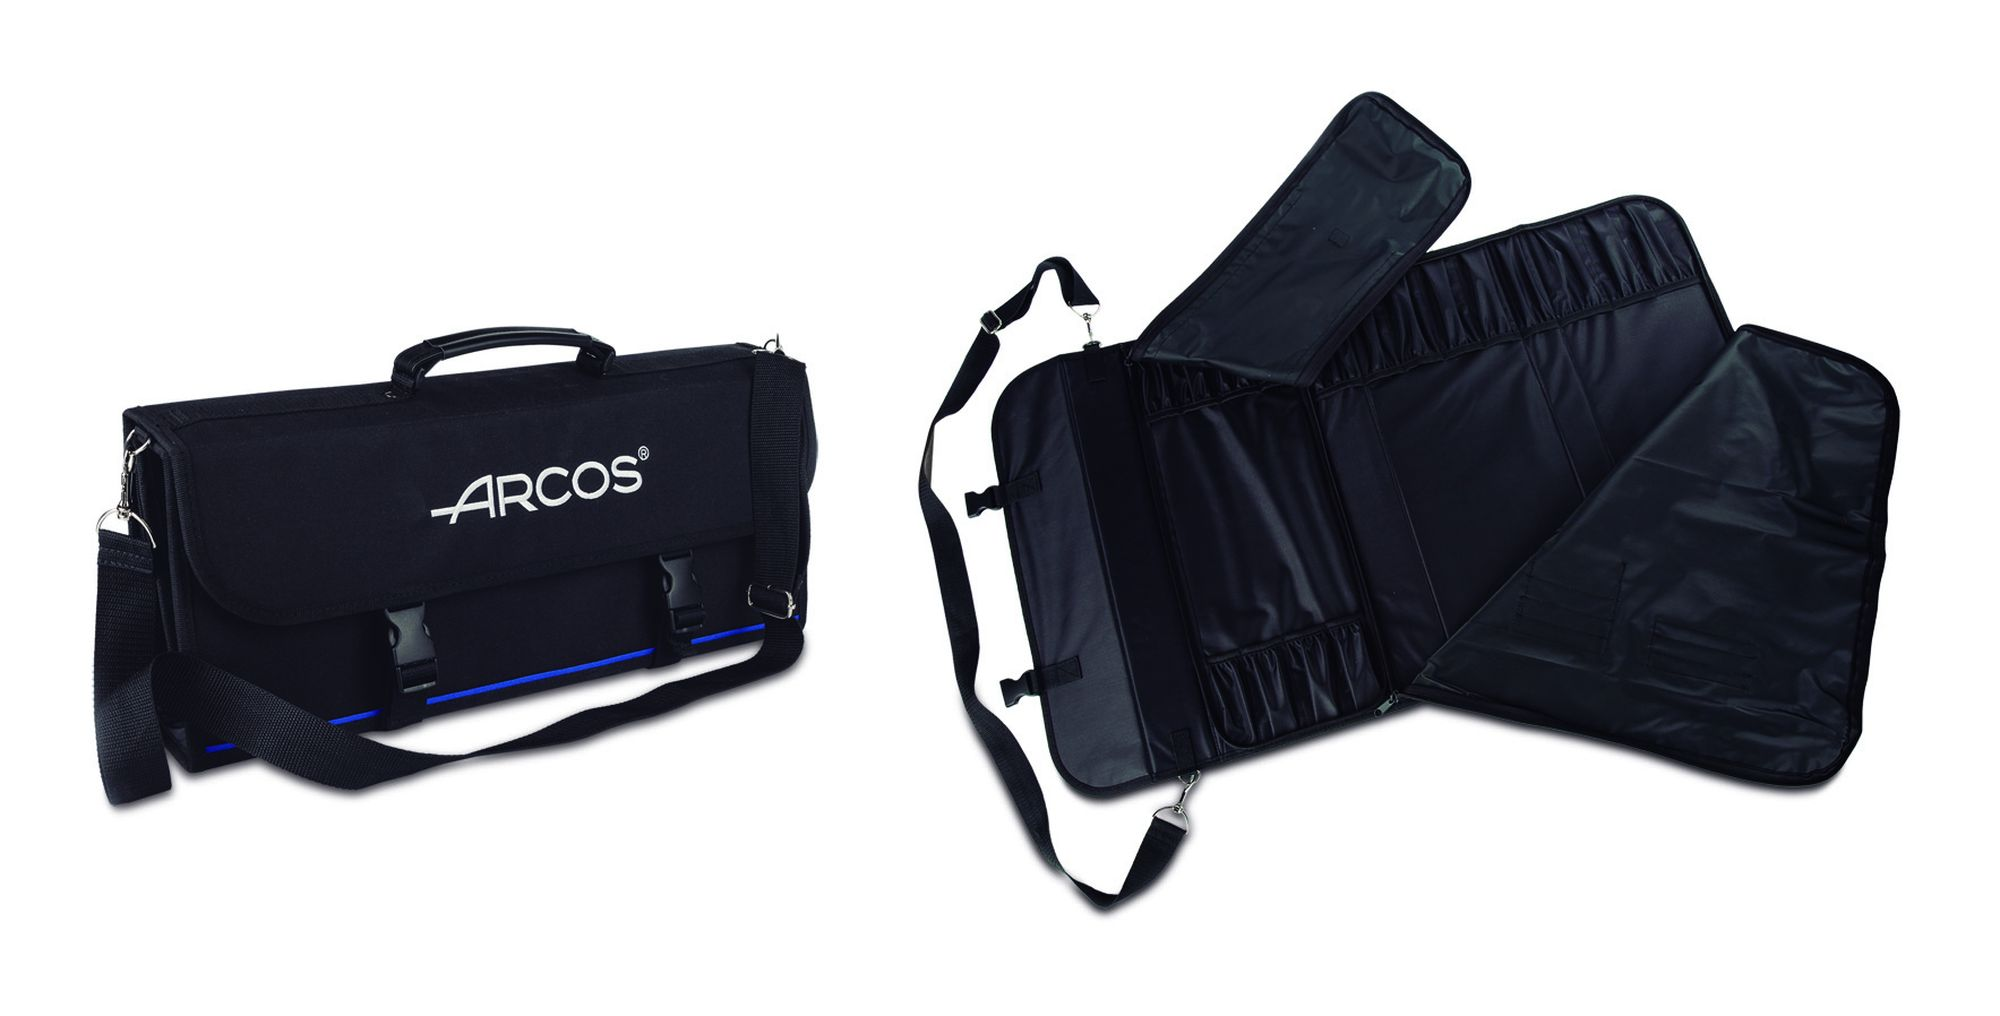 Knives Roll Bag 17 pieces Arcos ref.: 691400